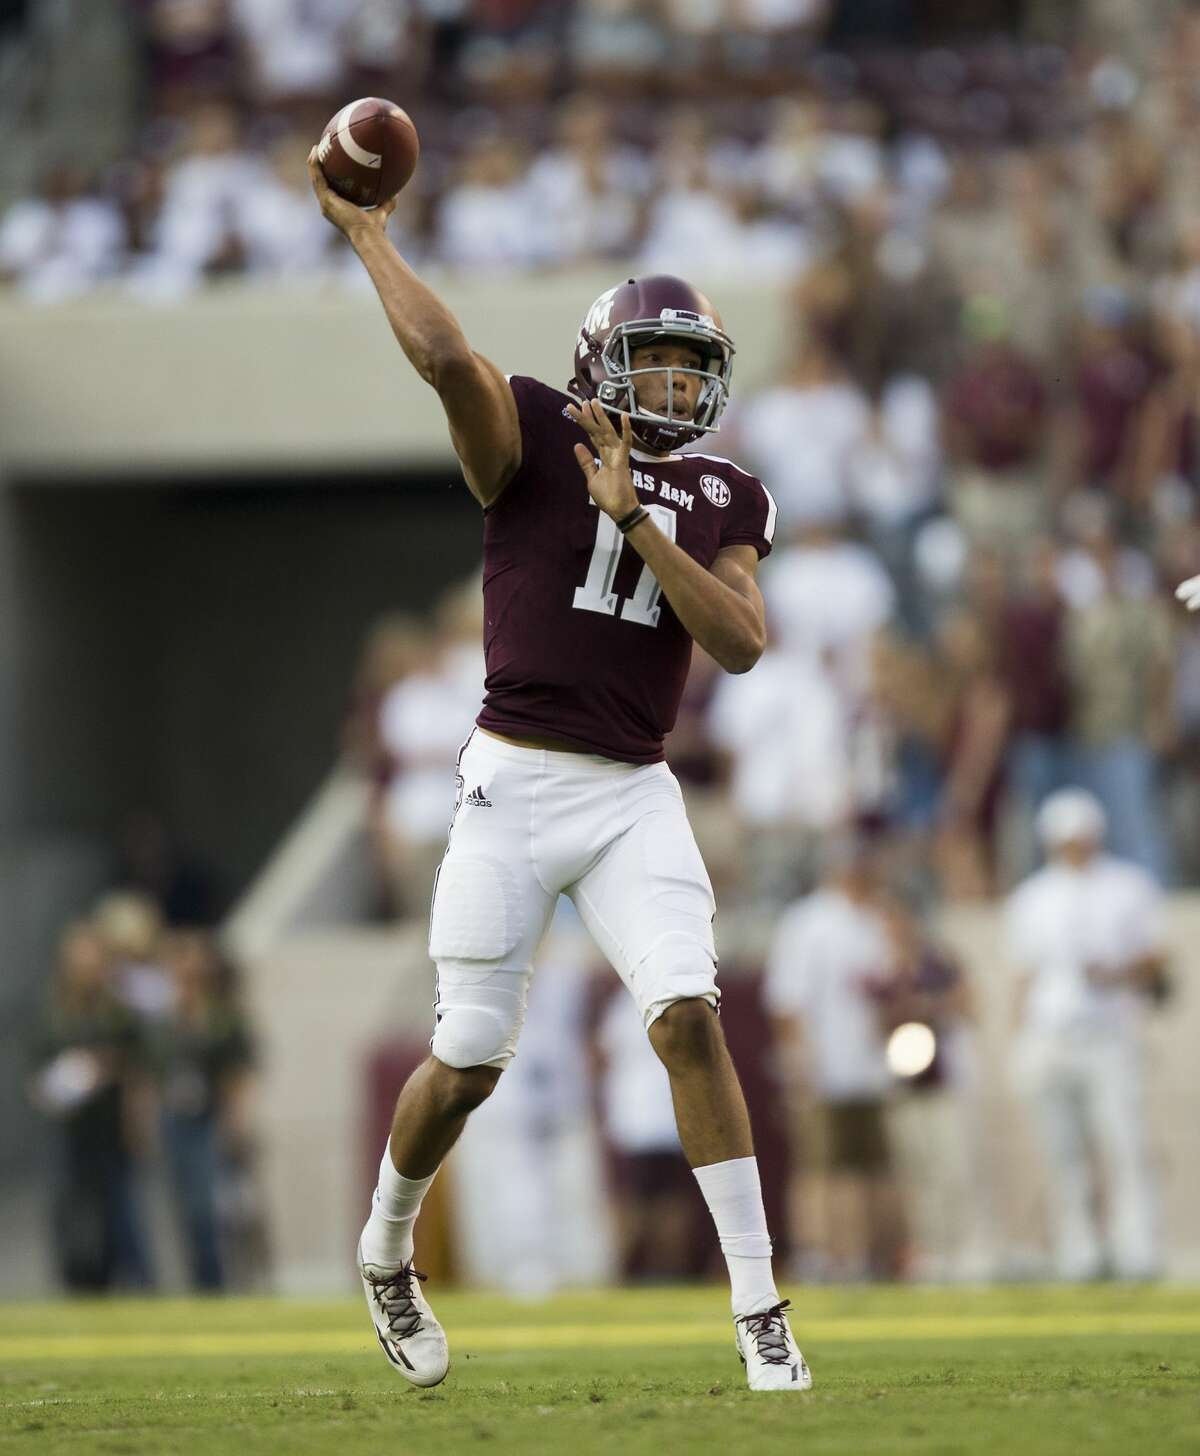 Texas A&M quarterback Kellen Mond (11) passes downfield against Nicholls State during the first quarter of an NCAA college football game Saturday, Sept. 9, 2017, in College Station, Texas. (AP Photo/Sam Craft)